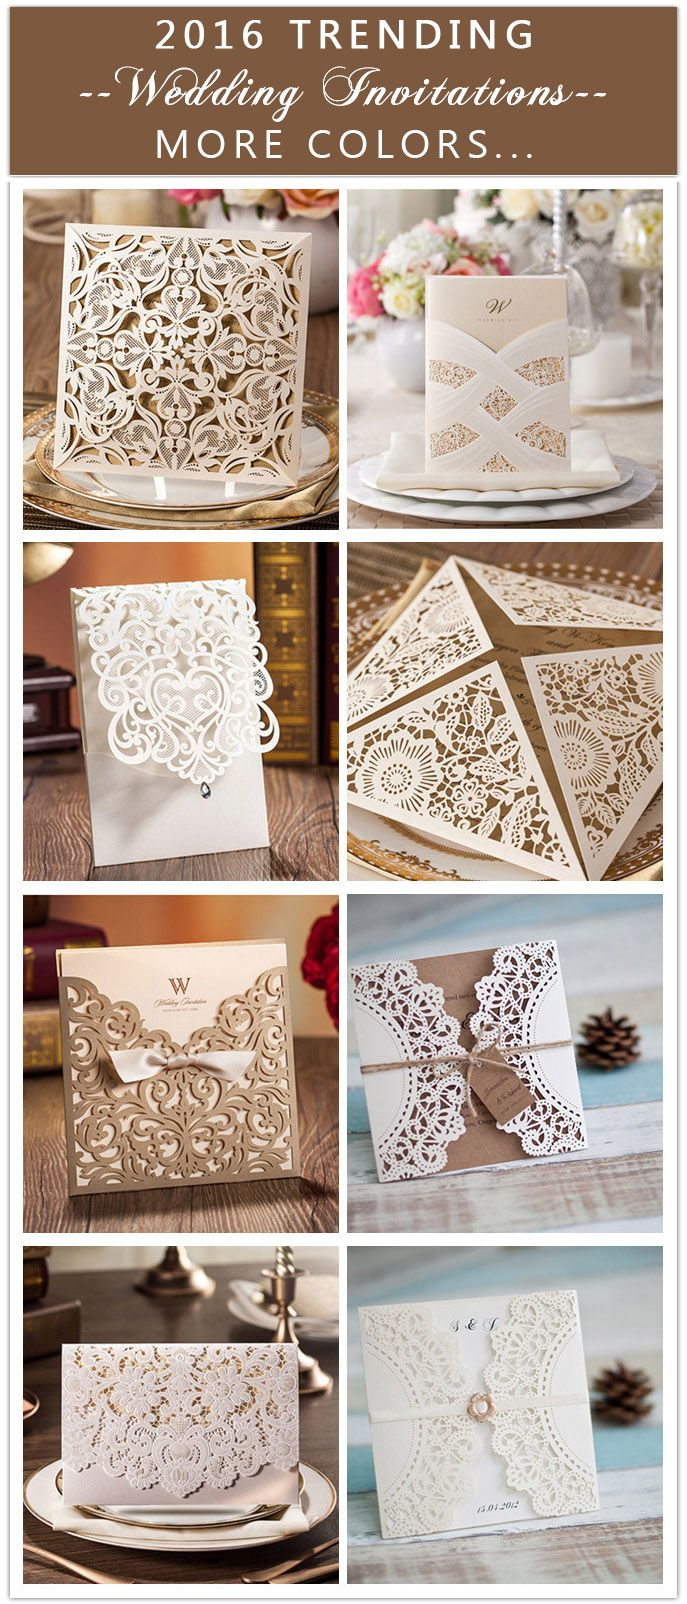 """2016 trending laser cut wedding invitations with more colors like navy blue, blush, black… USE COUPON CODE """"PRO"""" TO GET 15% OFF"""